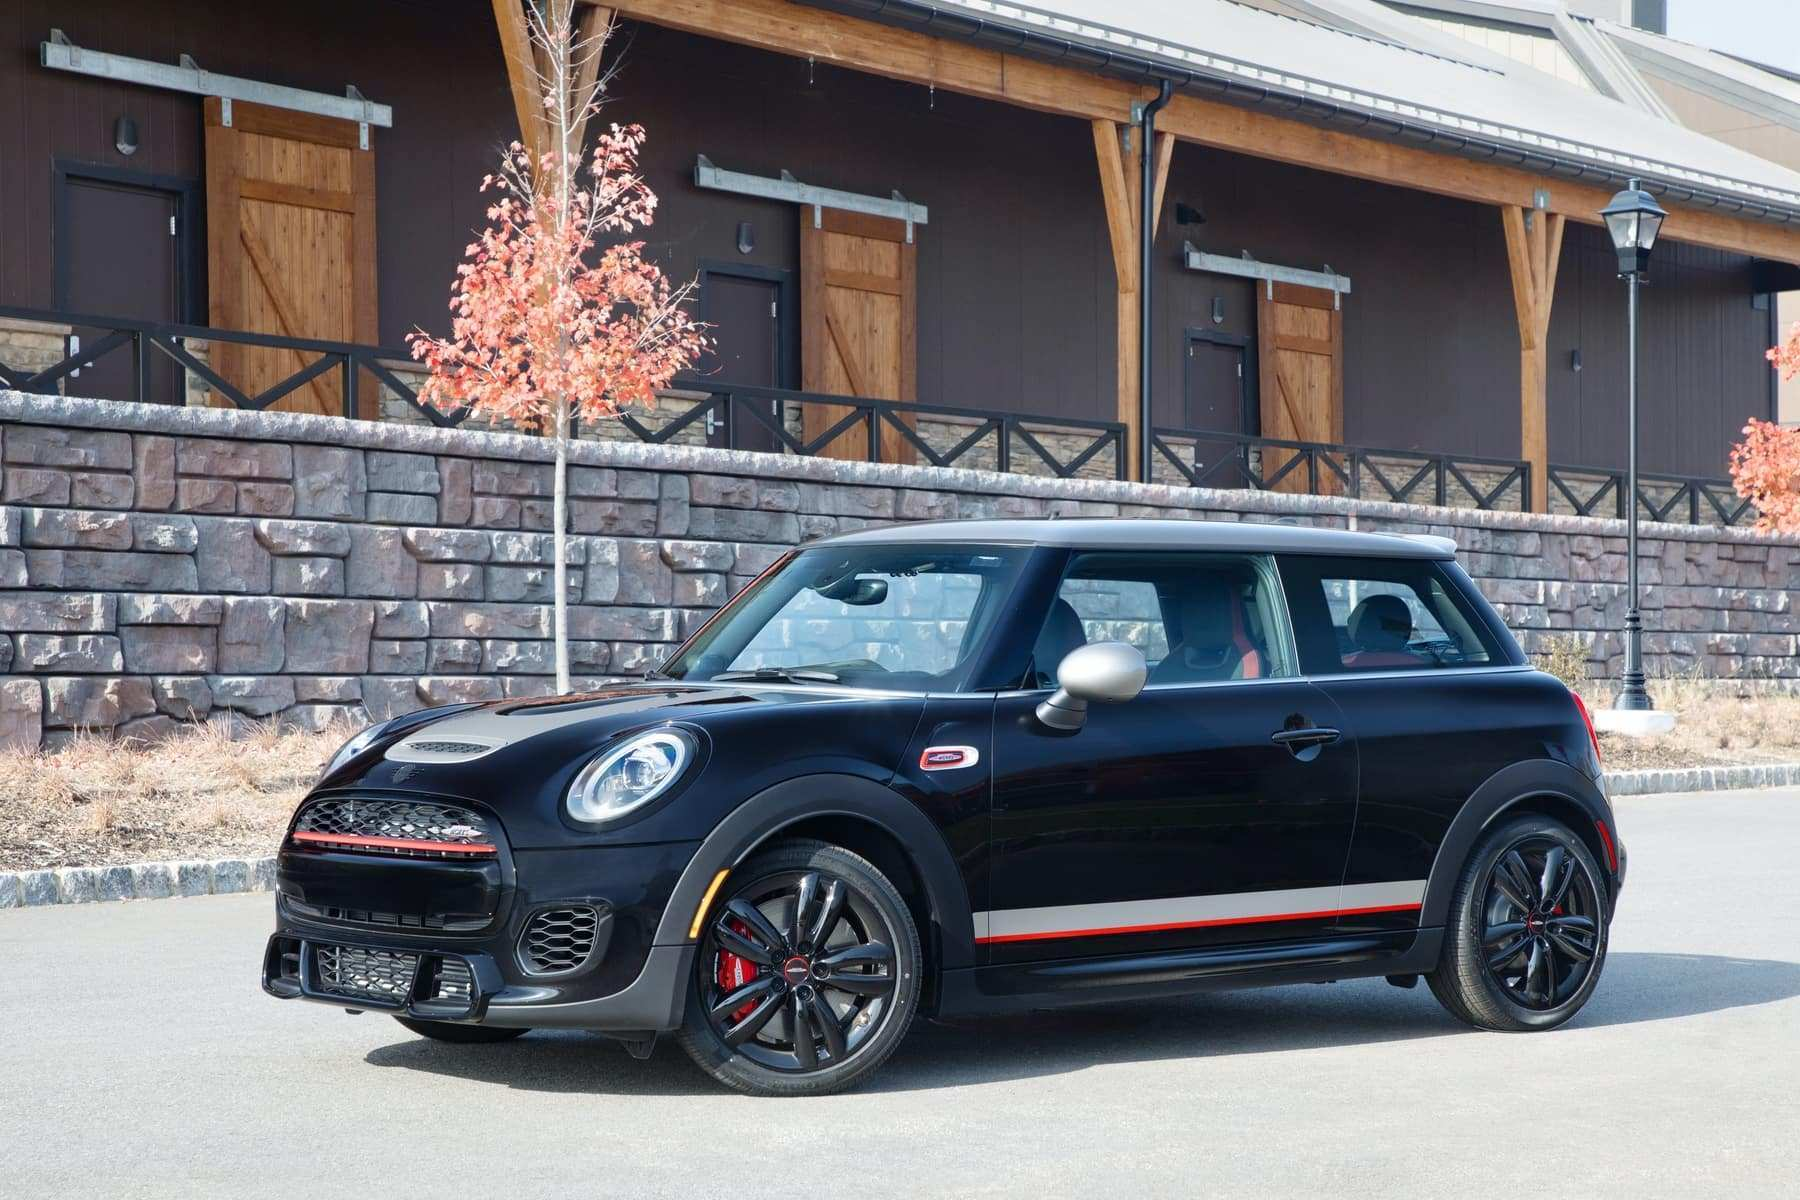 50 A 2019 Mini John Cooper Works Price Design And Review